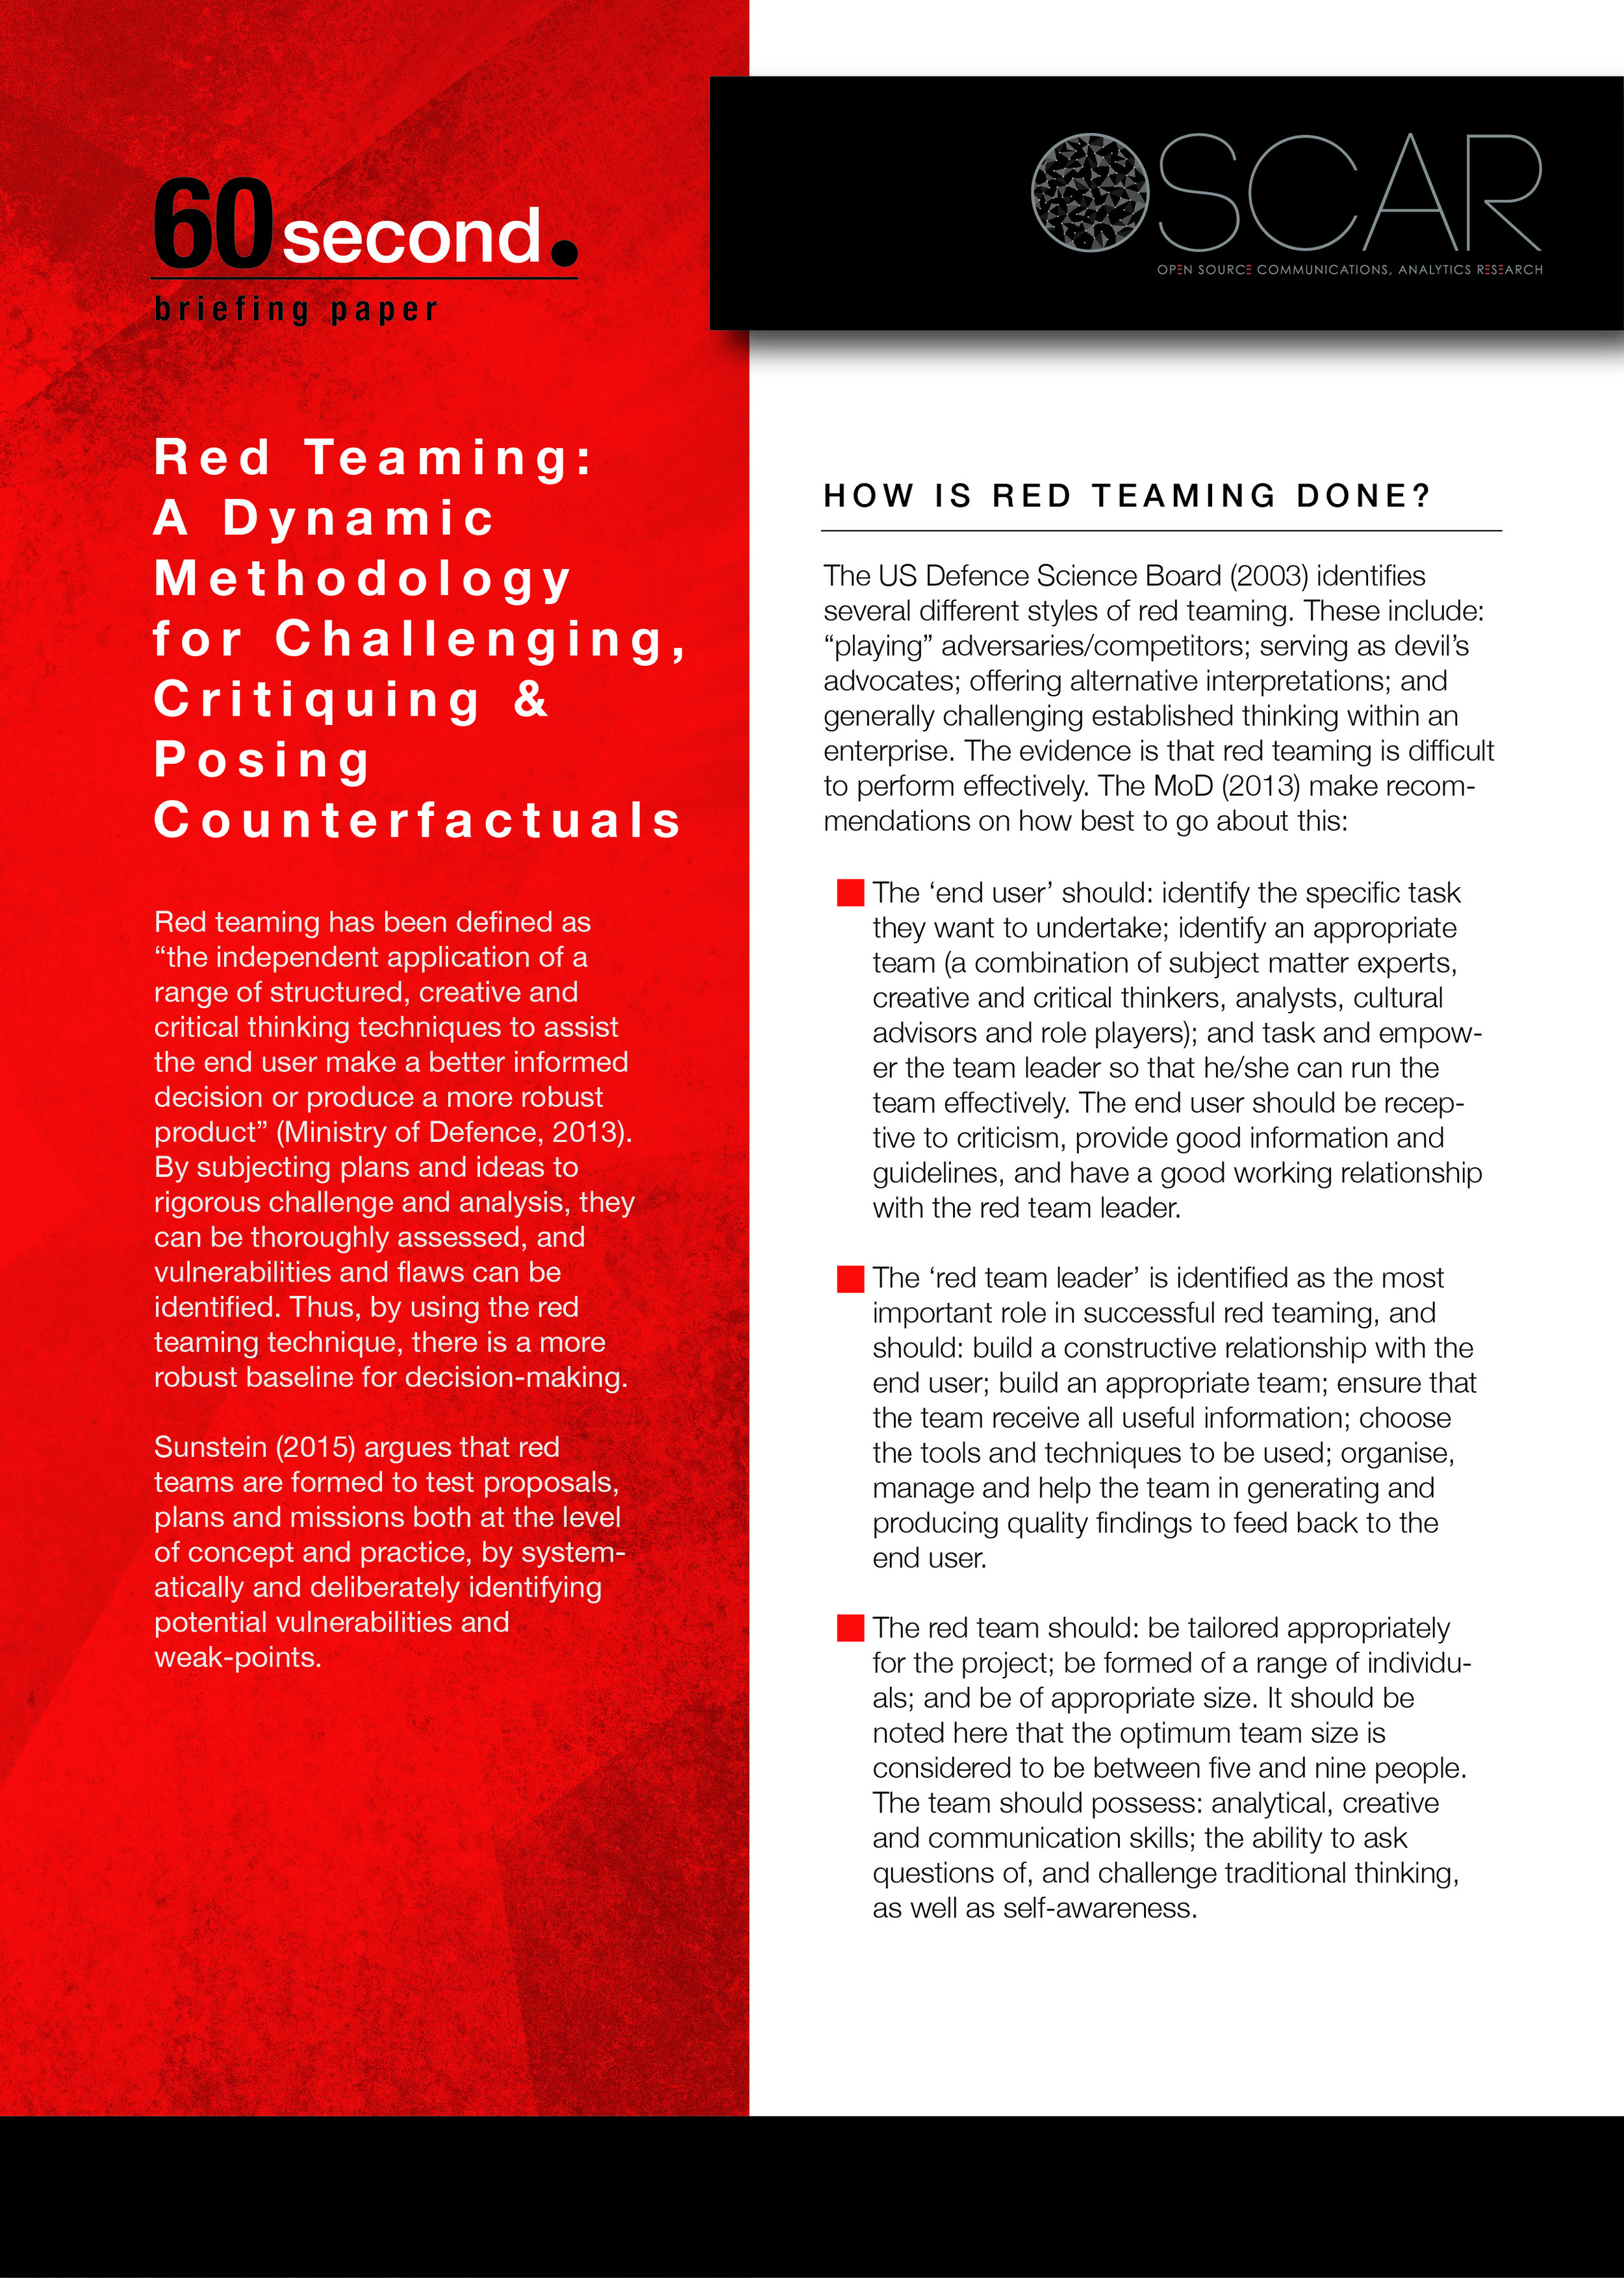 Red Teaming: A Dynamic Methodology for Challenging, Critiquing & Posing Counterfactuals -